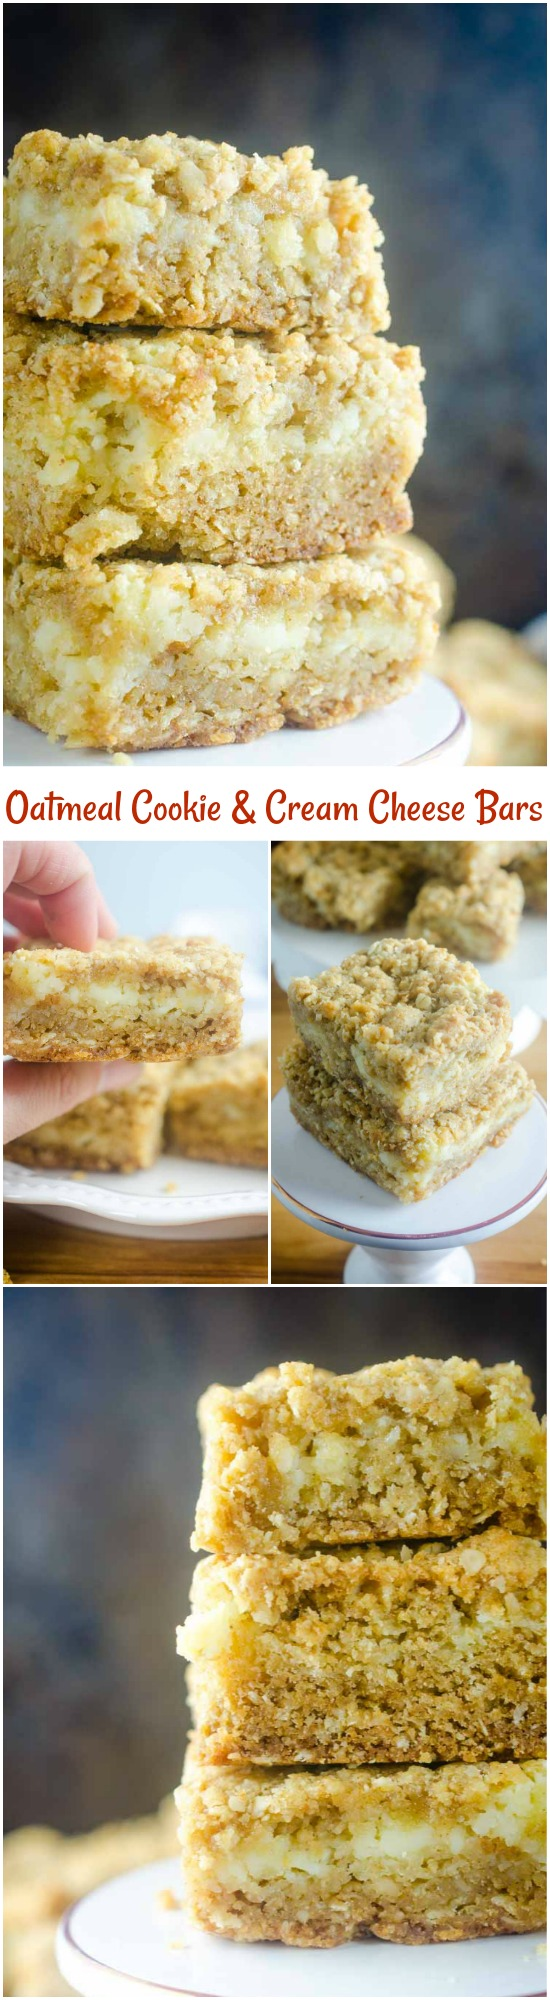 An oatmeal cookie and cheesecake collide in this Oatmeal Cookie and Cream Cheese Bars recipe. They are luscious, sweet, and can be made quickly and easily. #dessert #recipe #creamcheese #oats